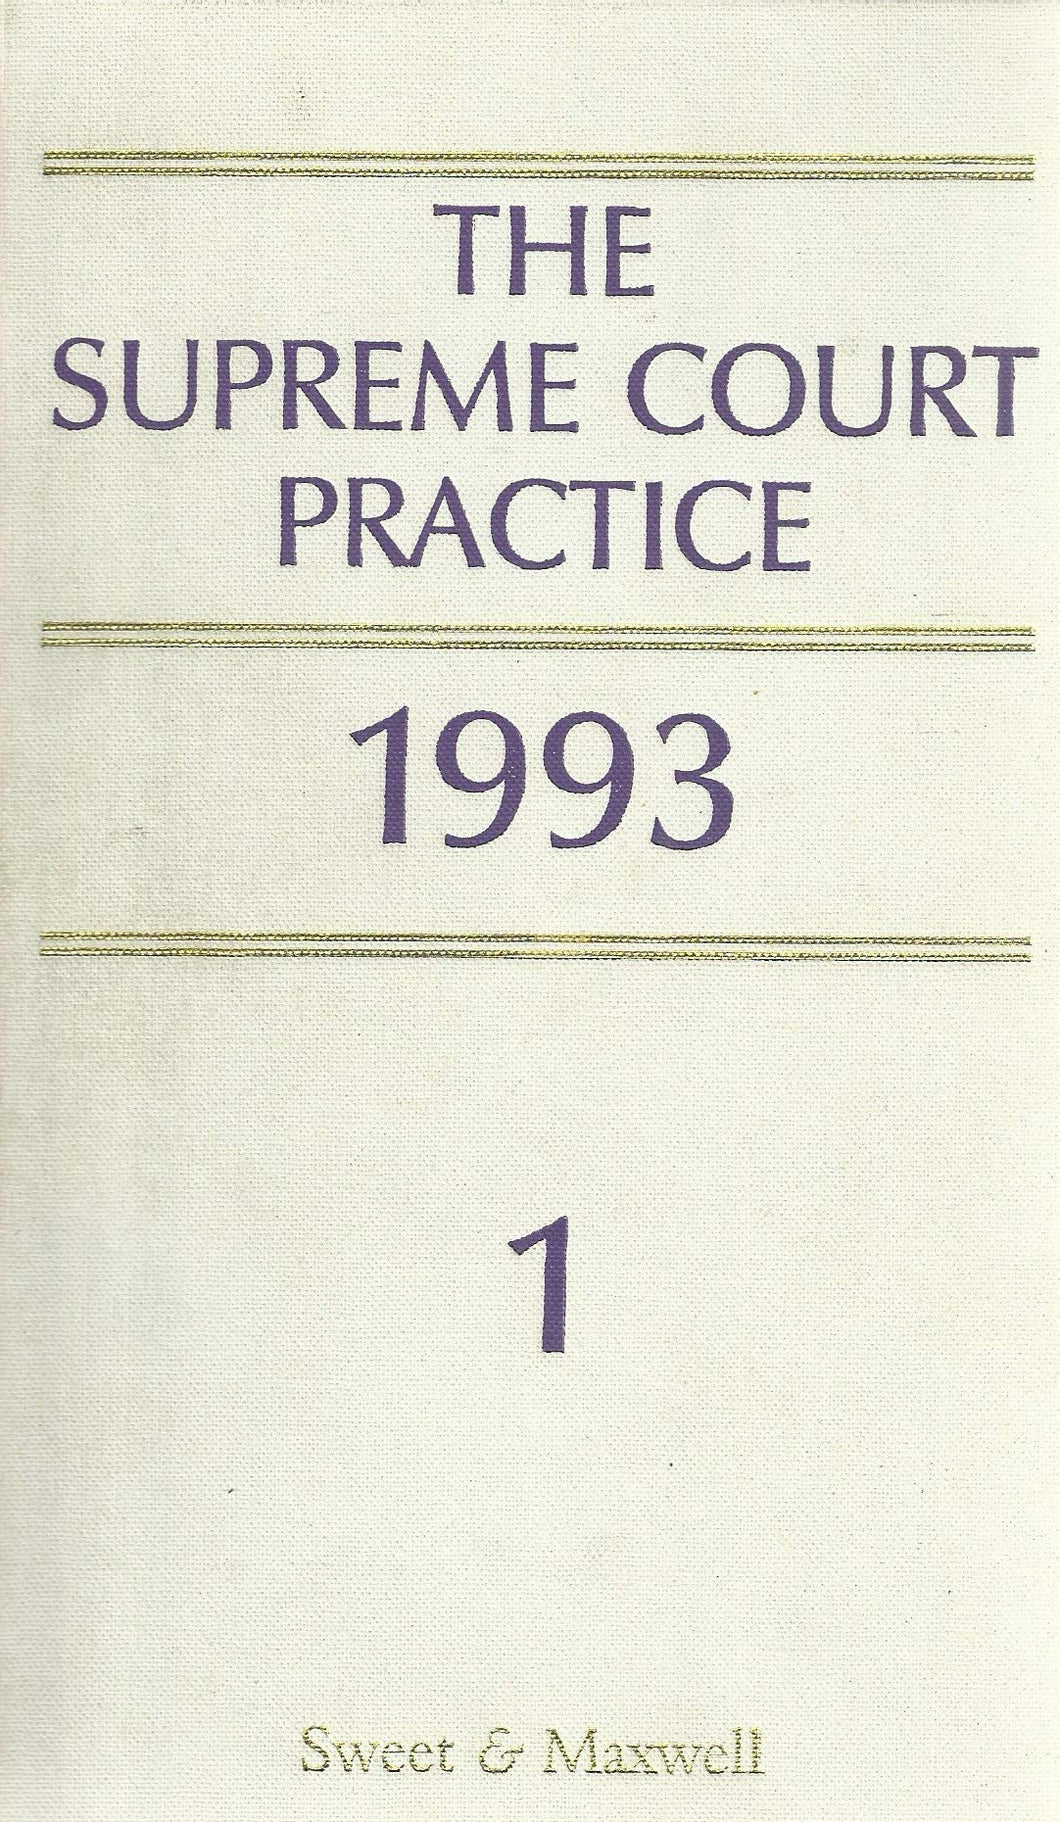 The Supreme Court Practice: 1993